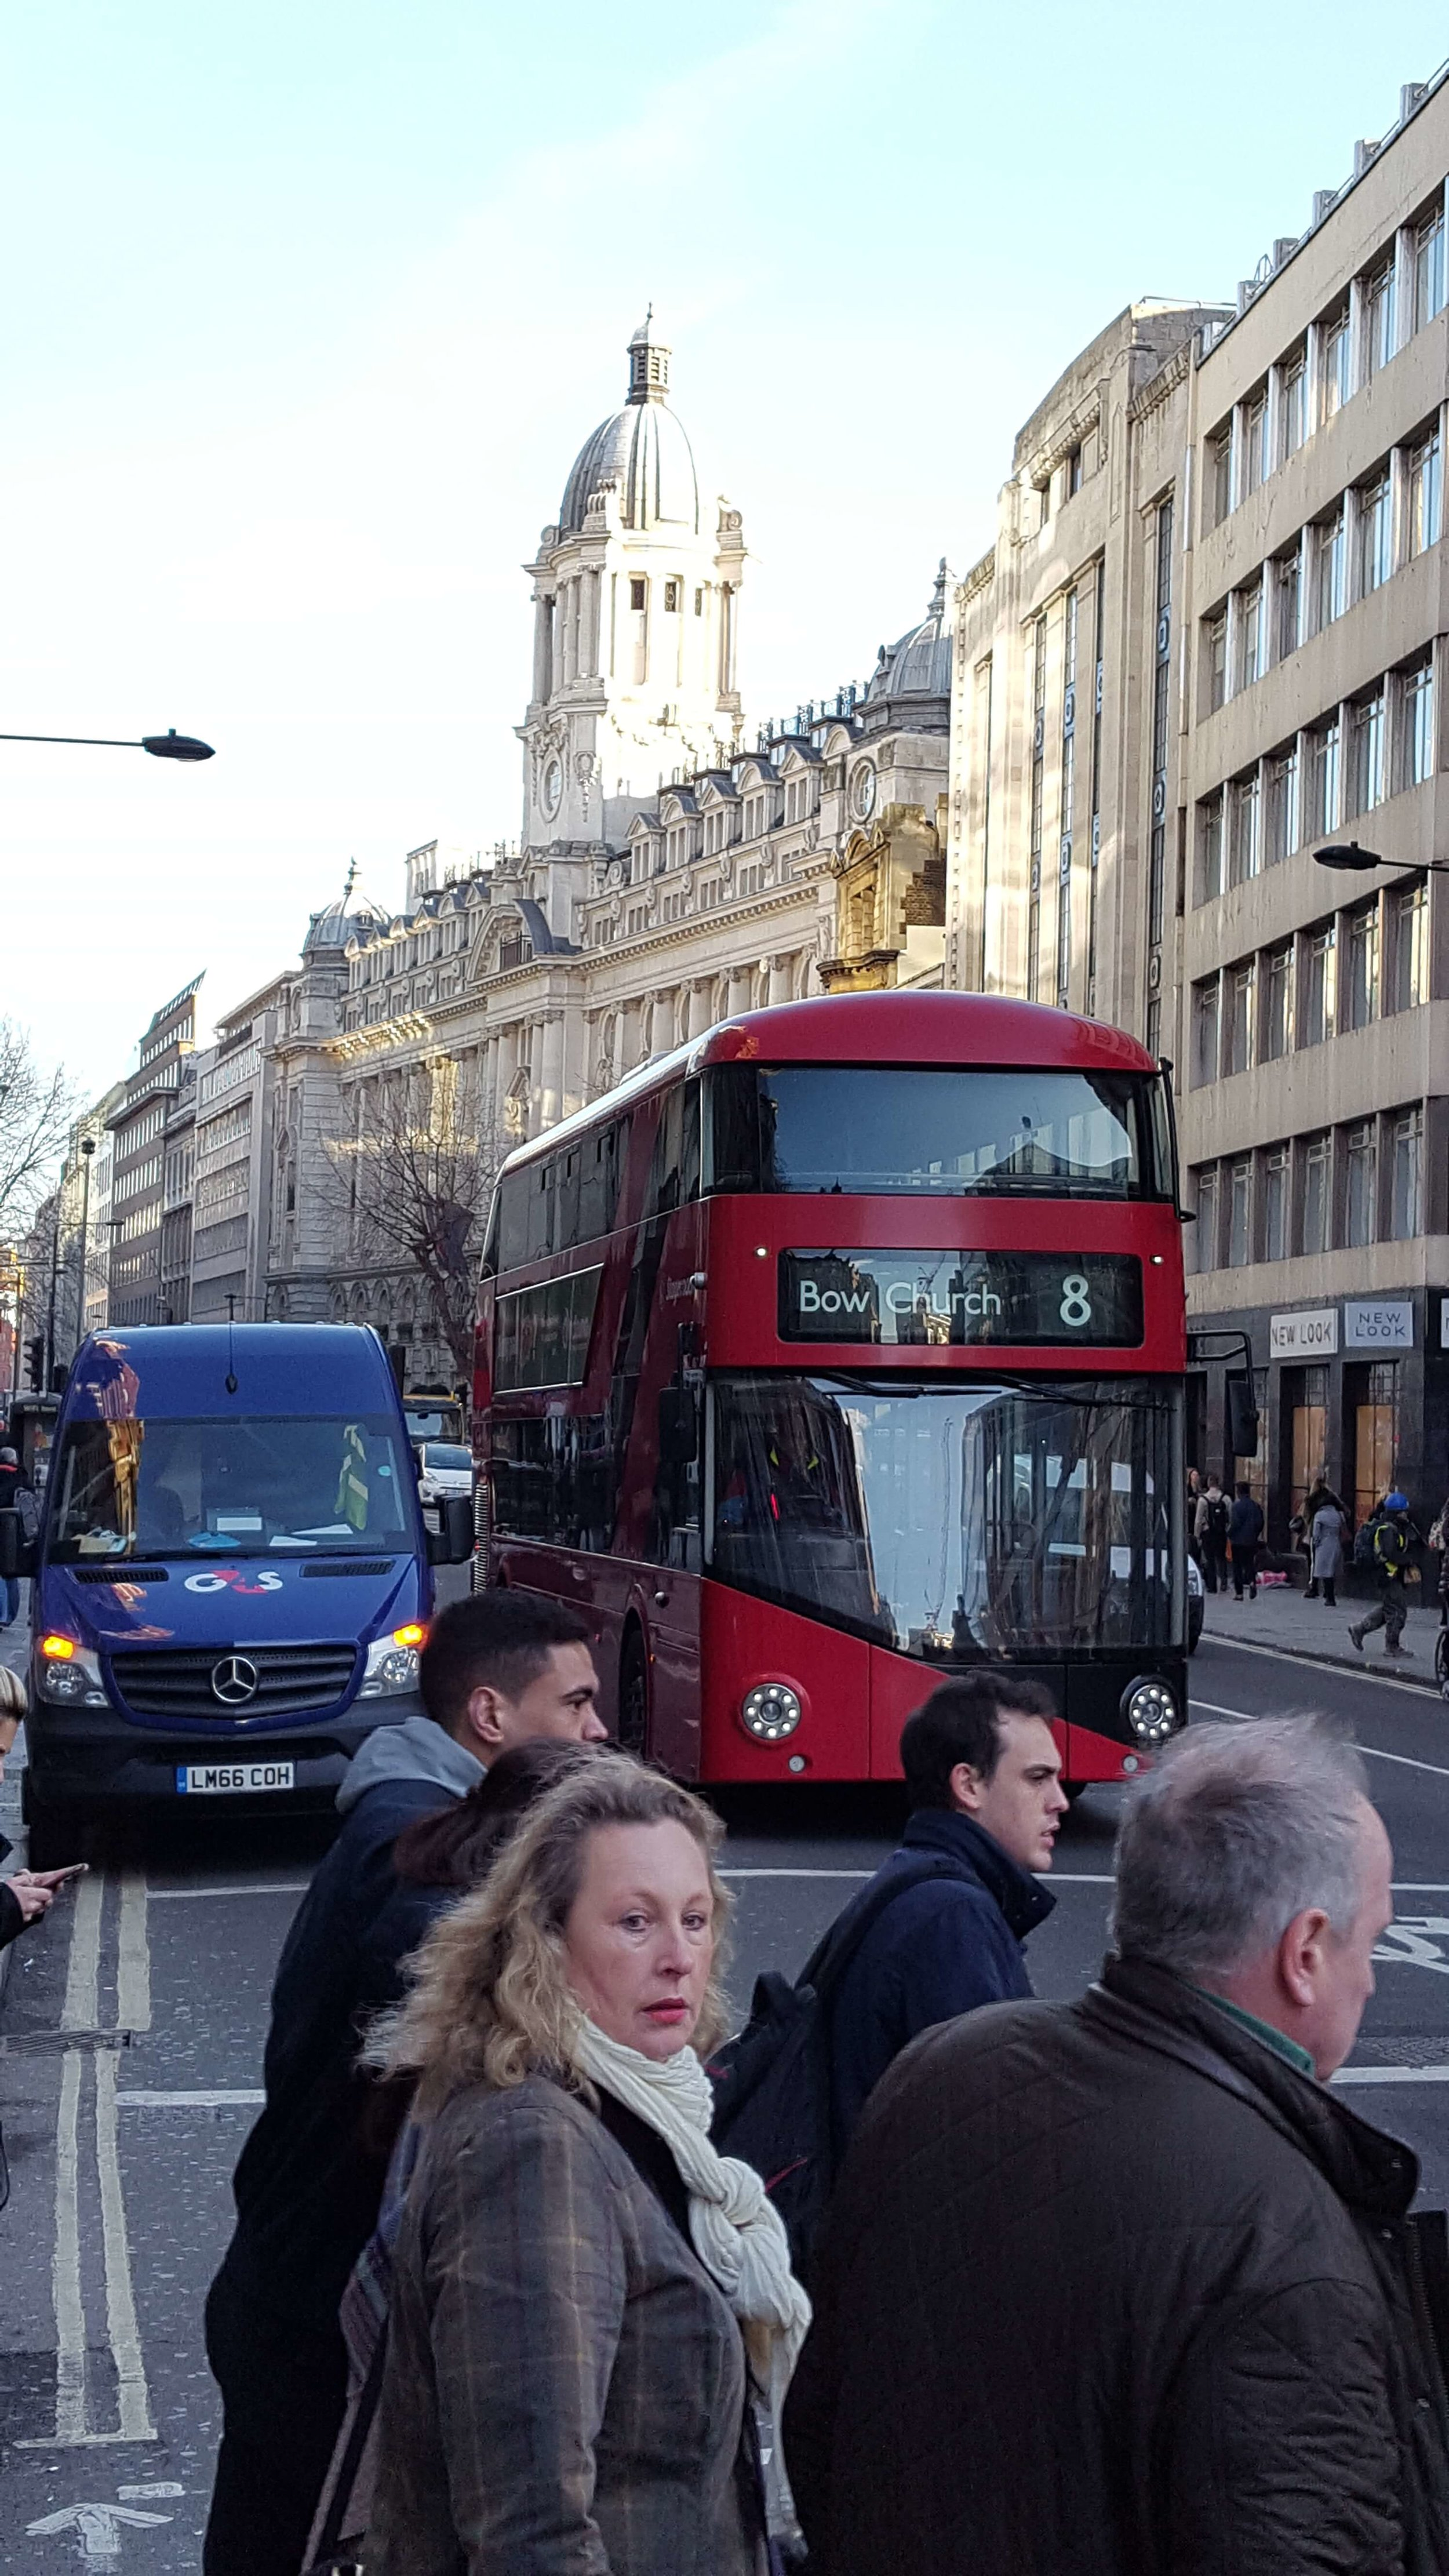 This sums London up for me, finely dressed urbanities with a double-decker bus rolling down the street, a mix of modern and historical architecture in the background. One of my favorite hotels, the Rosewood, which has excellent cocktails and jazz, lies in the background. Hopefully we'll have time for a cuppa tea or a neat cocktail.